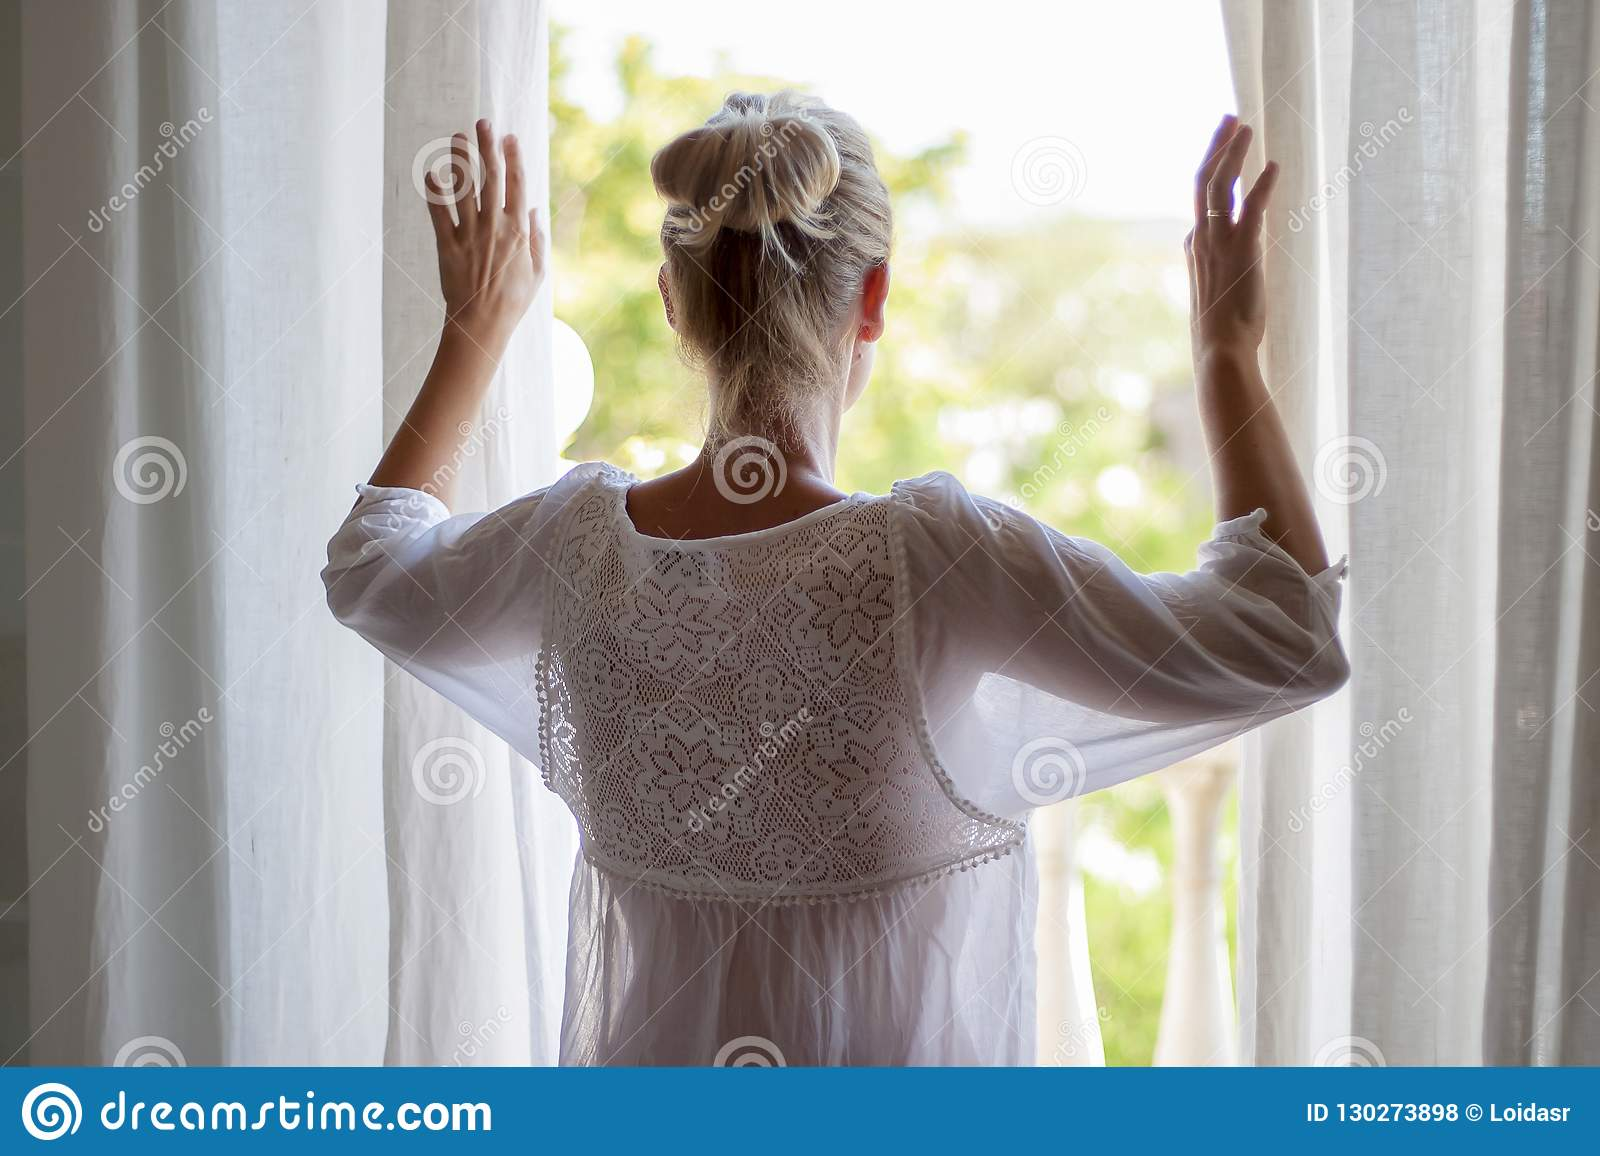 Woman looking out the window in pijama.